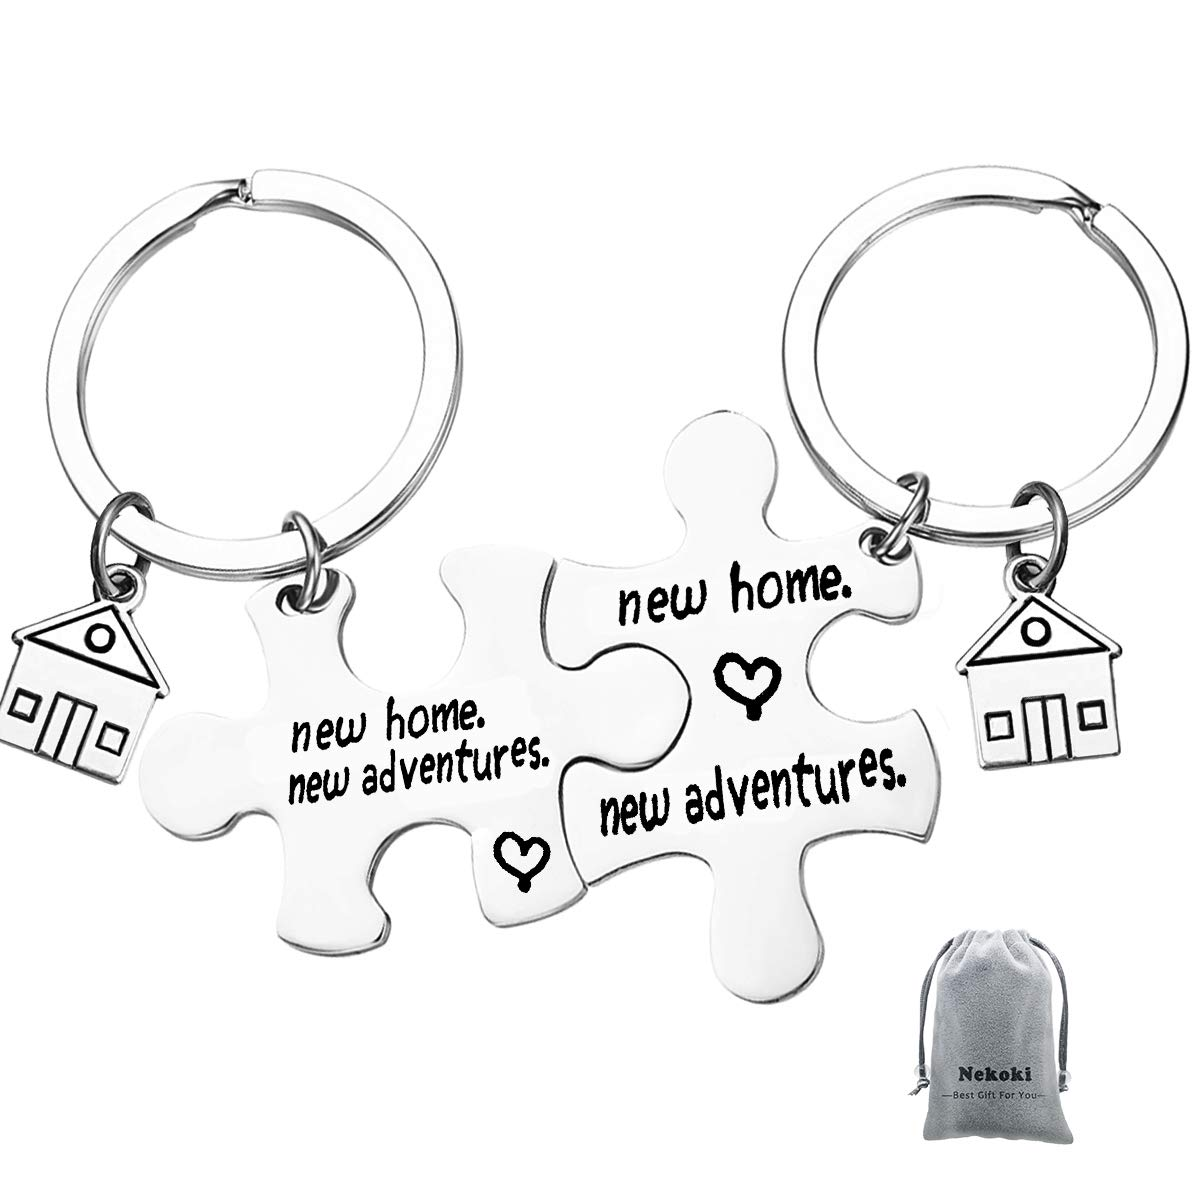 2Pcs New Home New Adventures Puzzle Keychain Set First Home Gift Housewarming Gift for New Homeowner House Keyring Moving in Keychain New Home Owners Jewelry Realtor Closing Jewelry